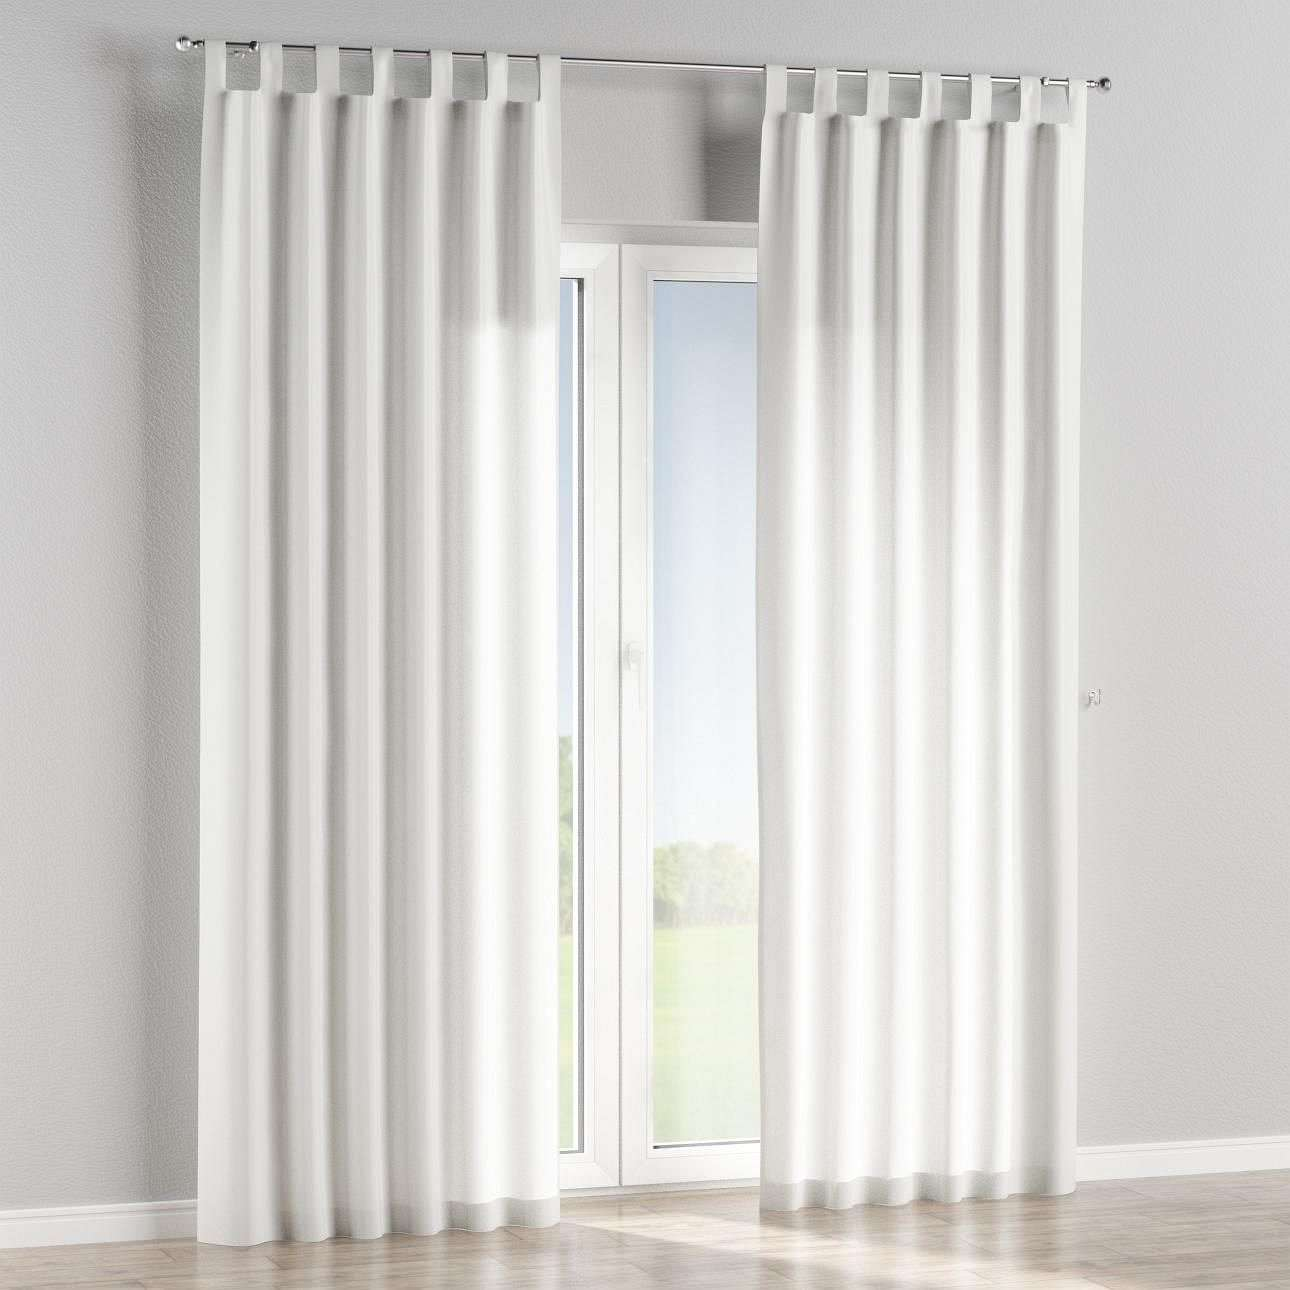 Tab top curtains in collection Rustica, fabric: 138-11